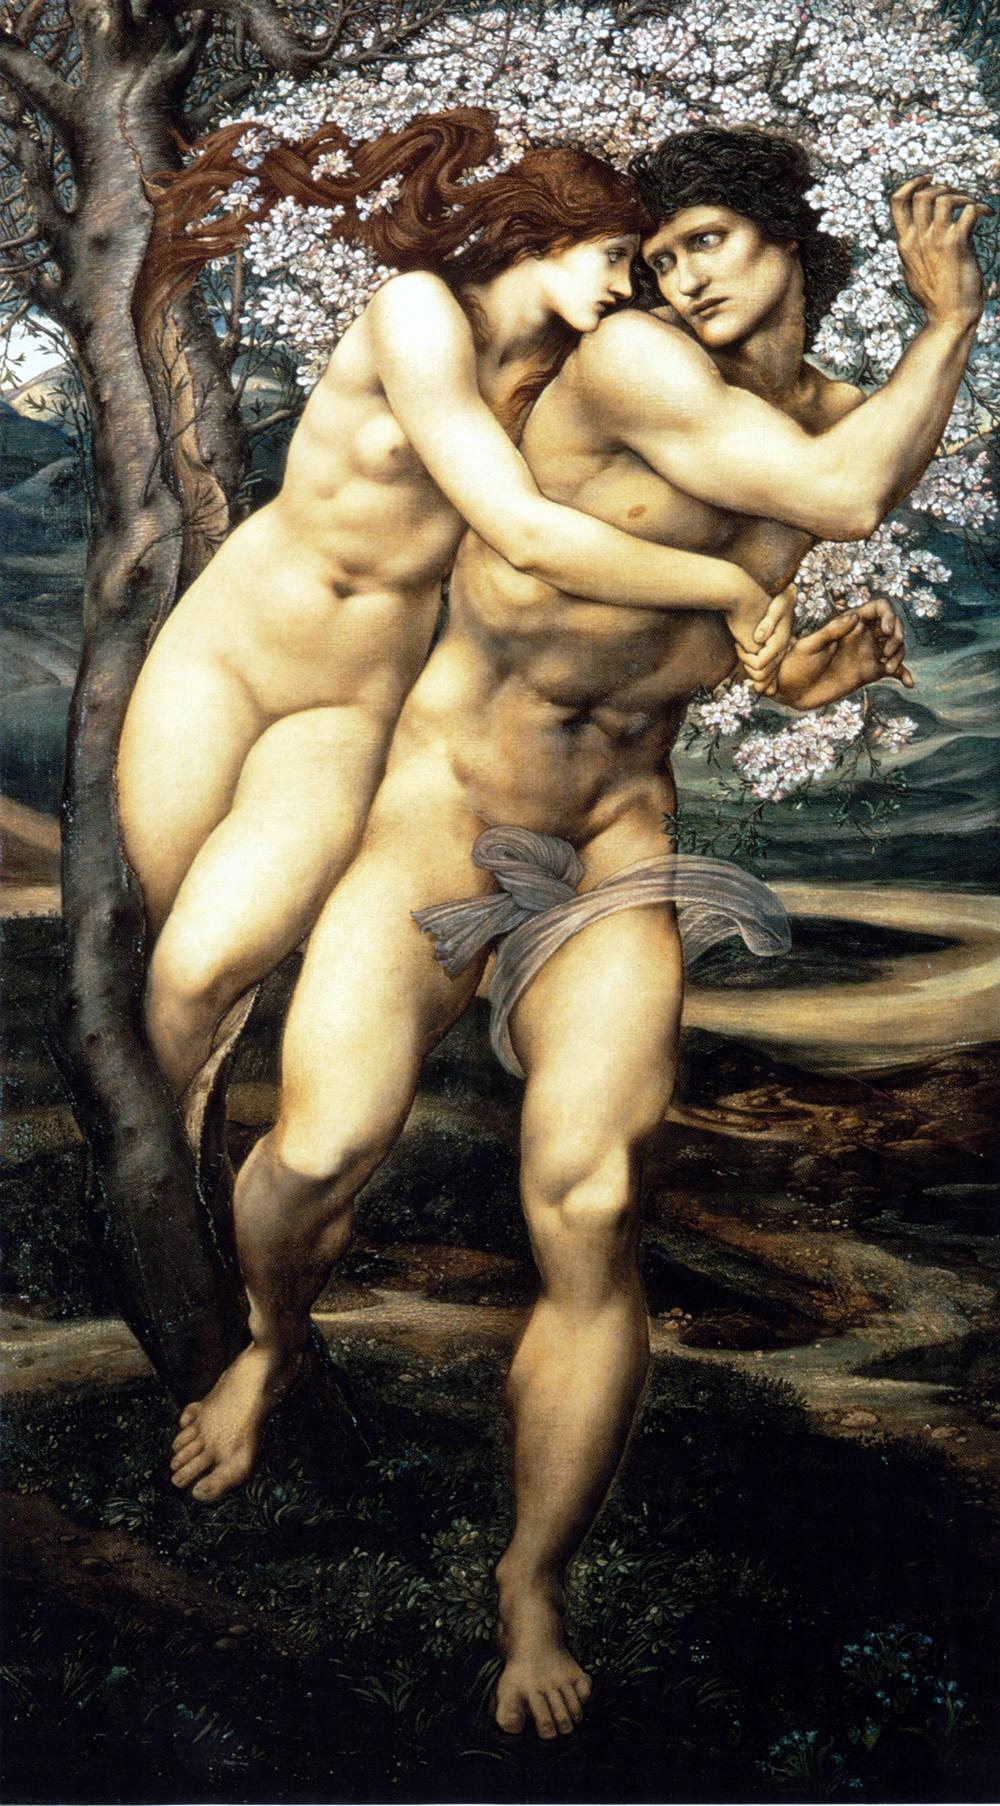 Edward Burne-Jones, The Tree of Forgiveness (1881 - 1882), oil on canvas, 111 x 186 cm. Collection of The Lady Lever Art Gallery, National Museums Liverpool, England